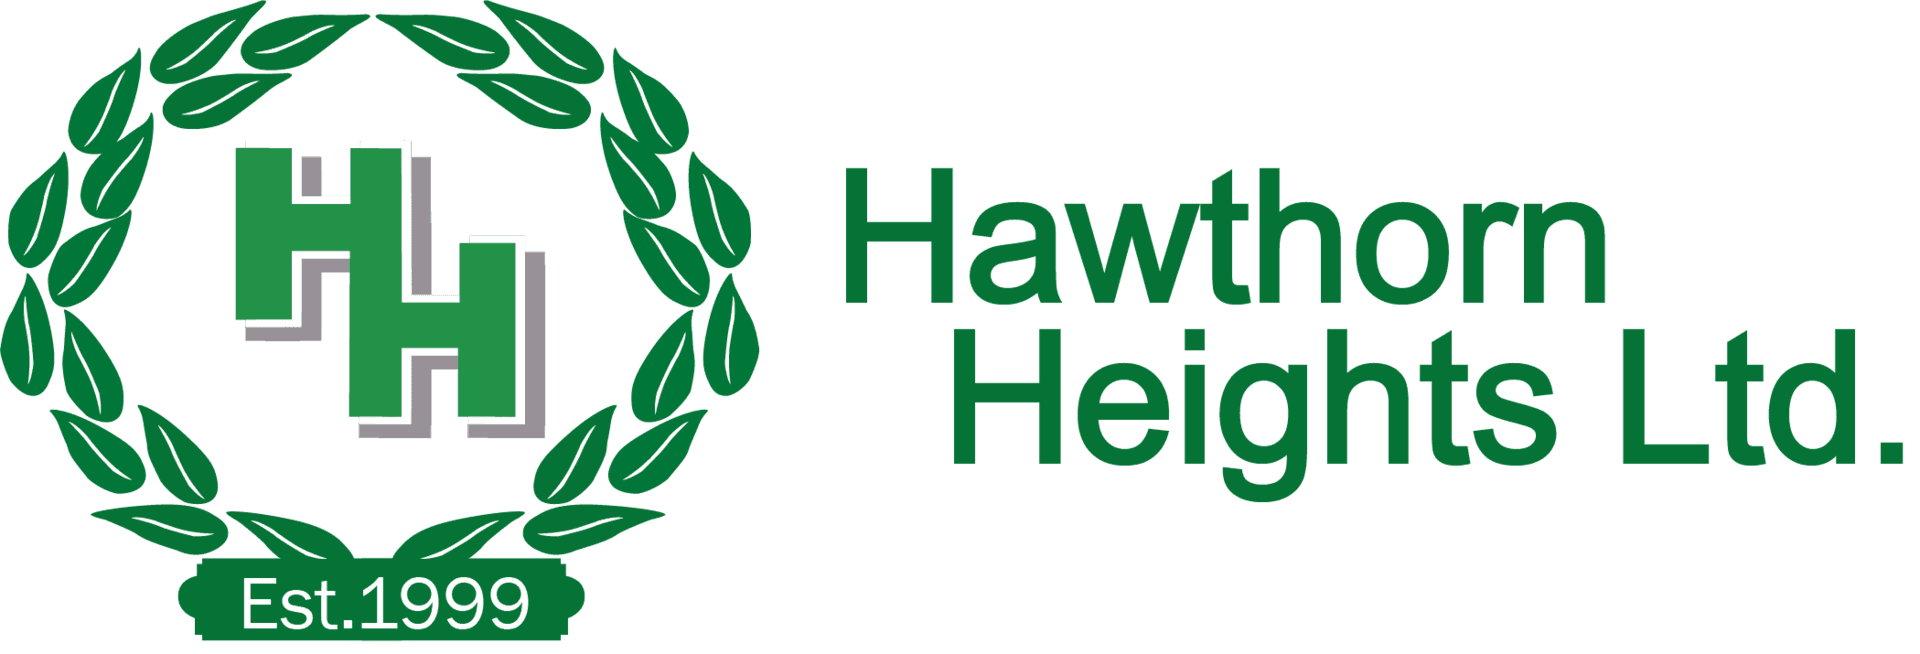 Hawthorn Heights logo